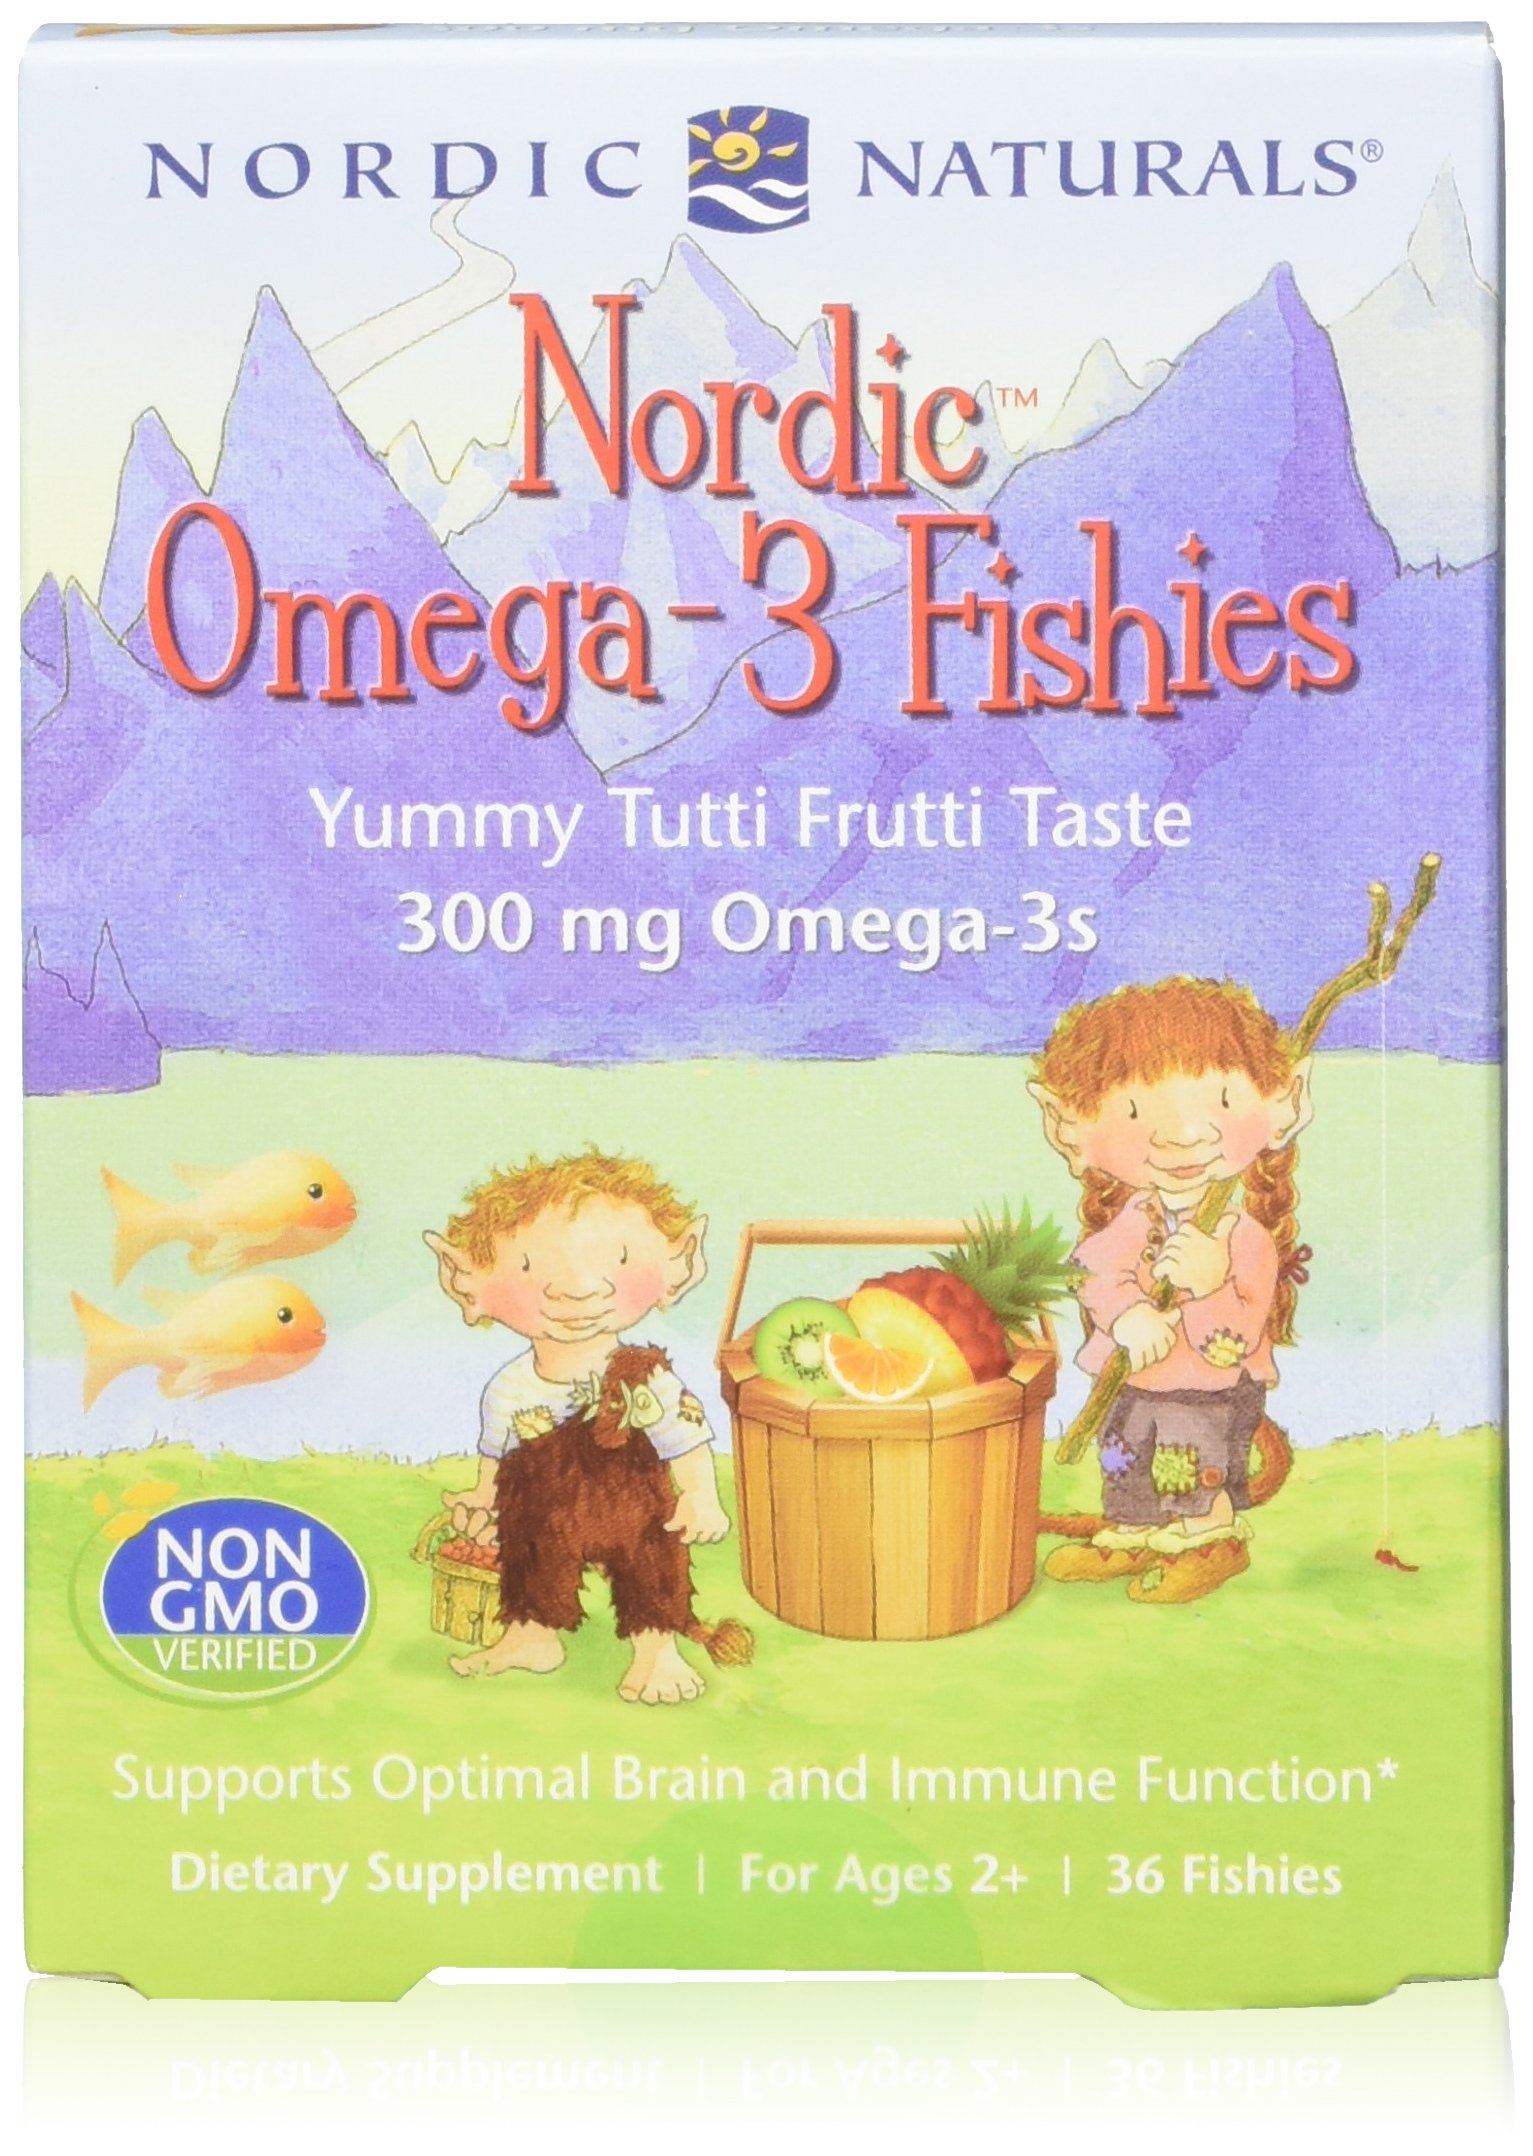 Nordic Omega-3 Fishies, 36 Fishies 2-pack by Nordic Naturals (Image #1)